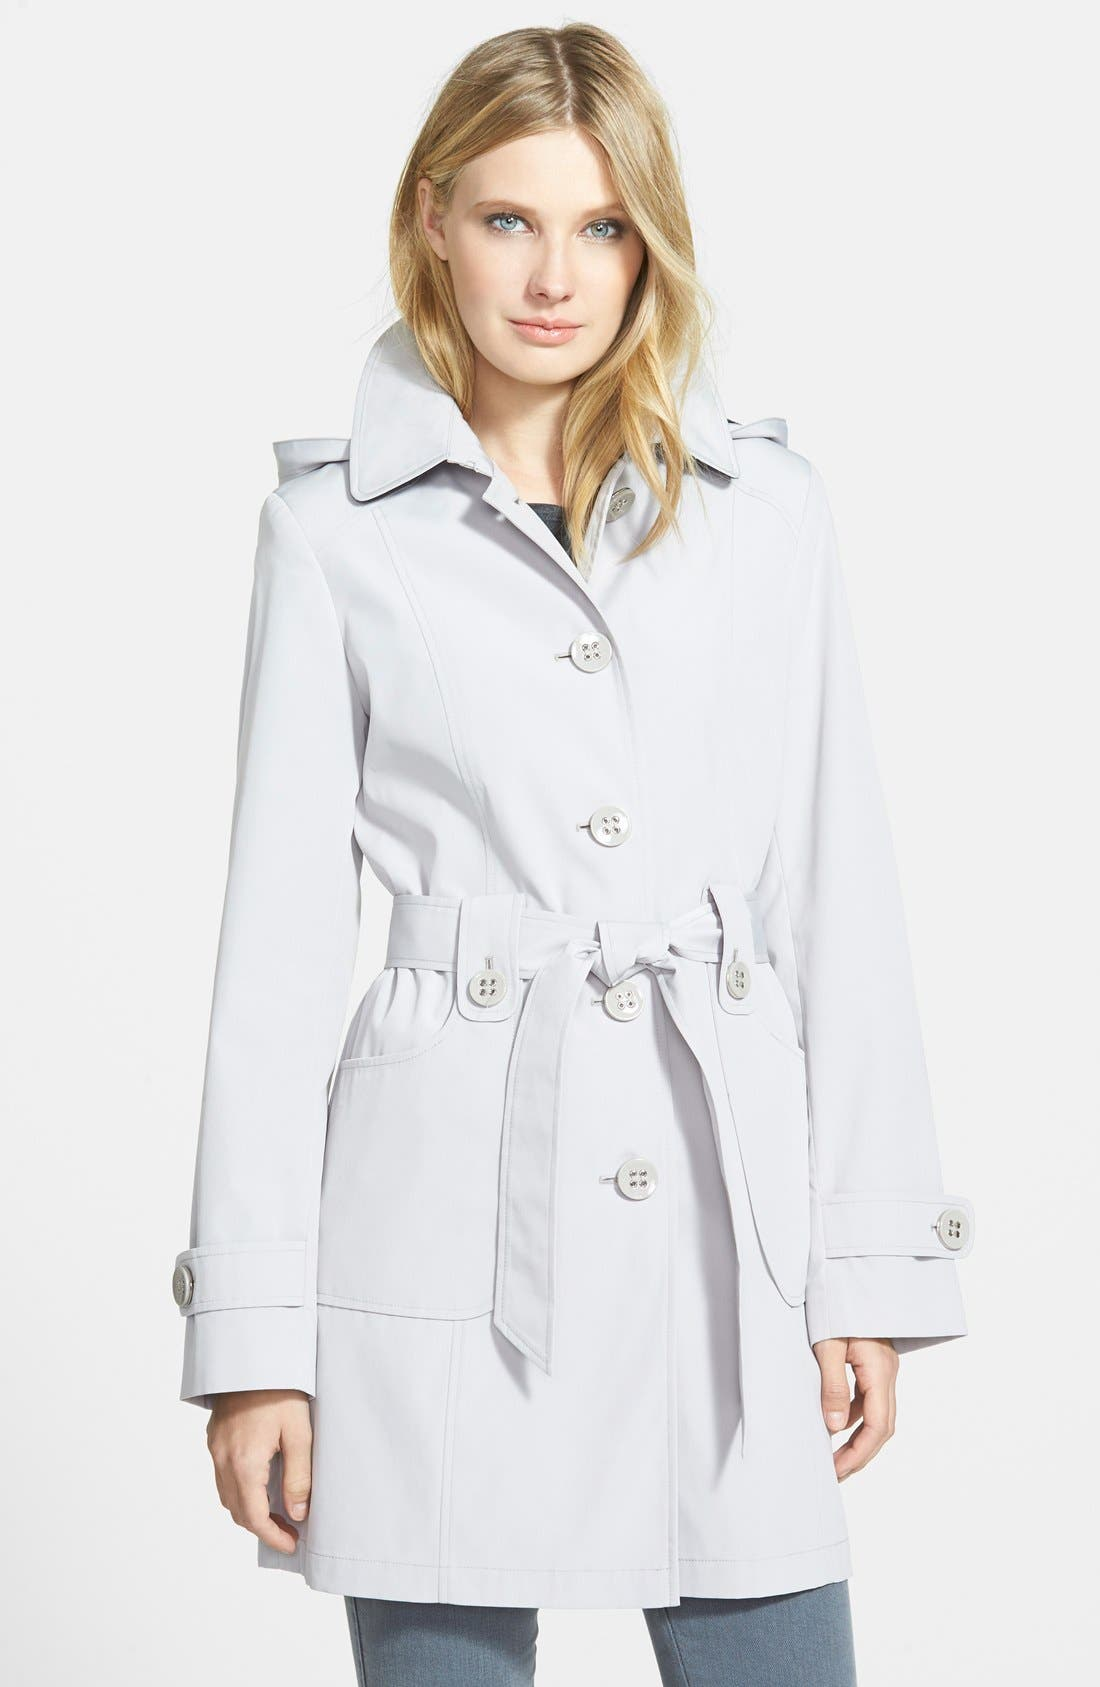 GALLERY Polka Dot Trim Single Breasted Trench Coat, Main, color, 021